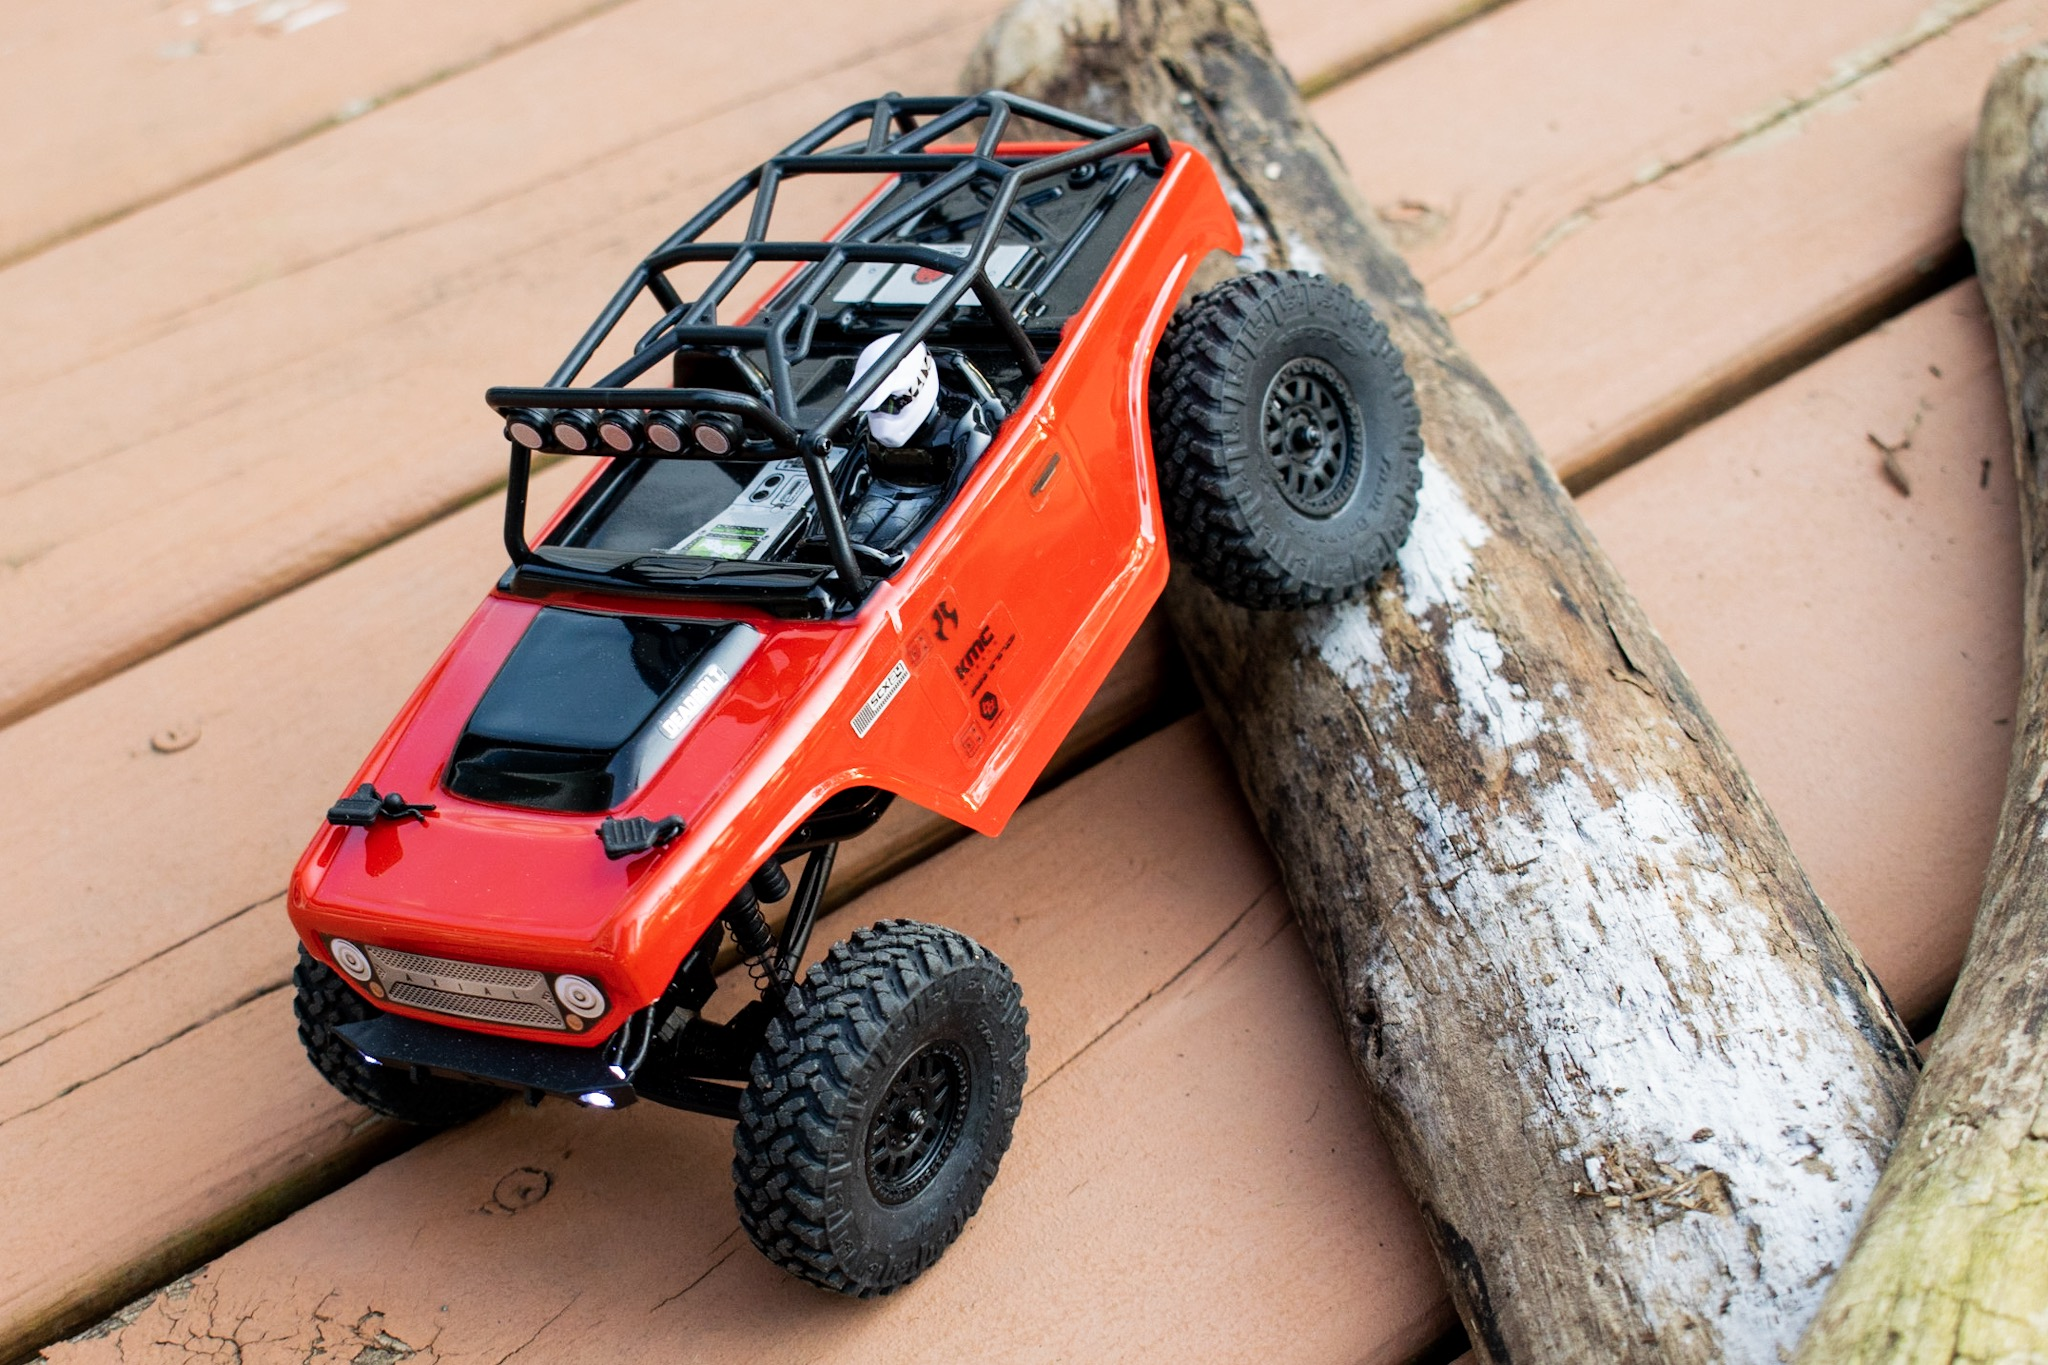 Axial SCX24 Deadbolt - Logs 2